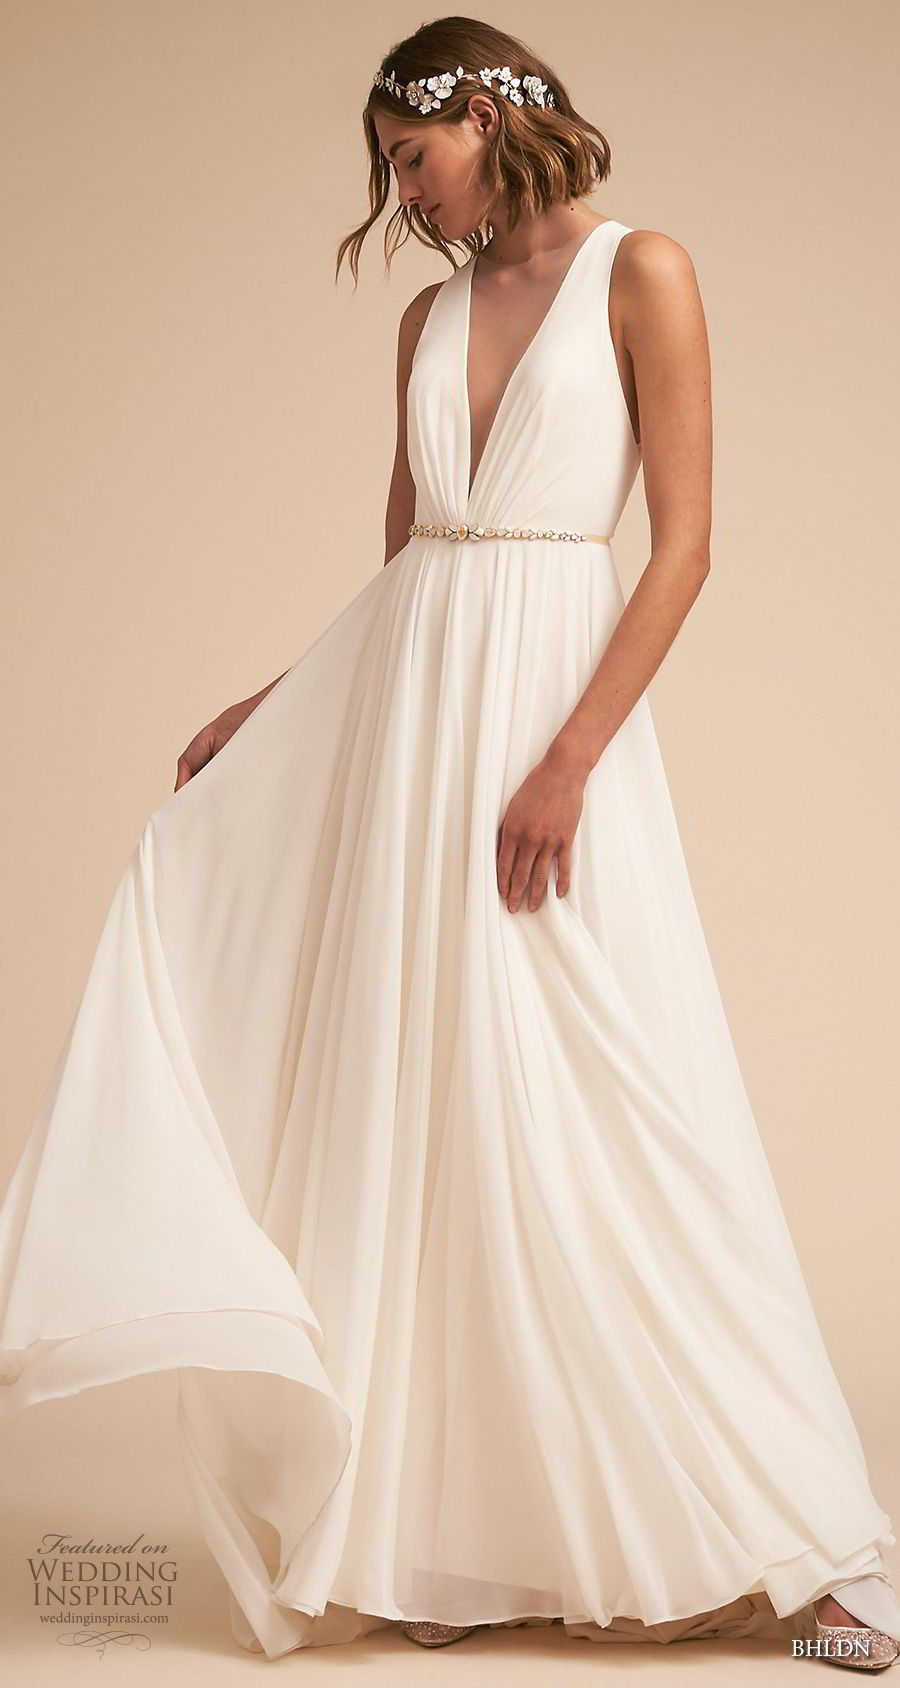 bhldn 2018 away bridal sleeveless deep v neck ruched bodice simple classic a line weding dress sheer button back medium train (2) mv